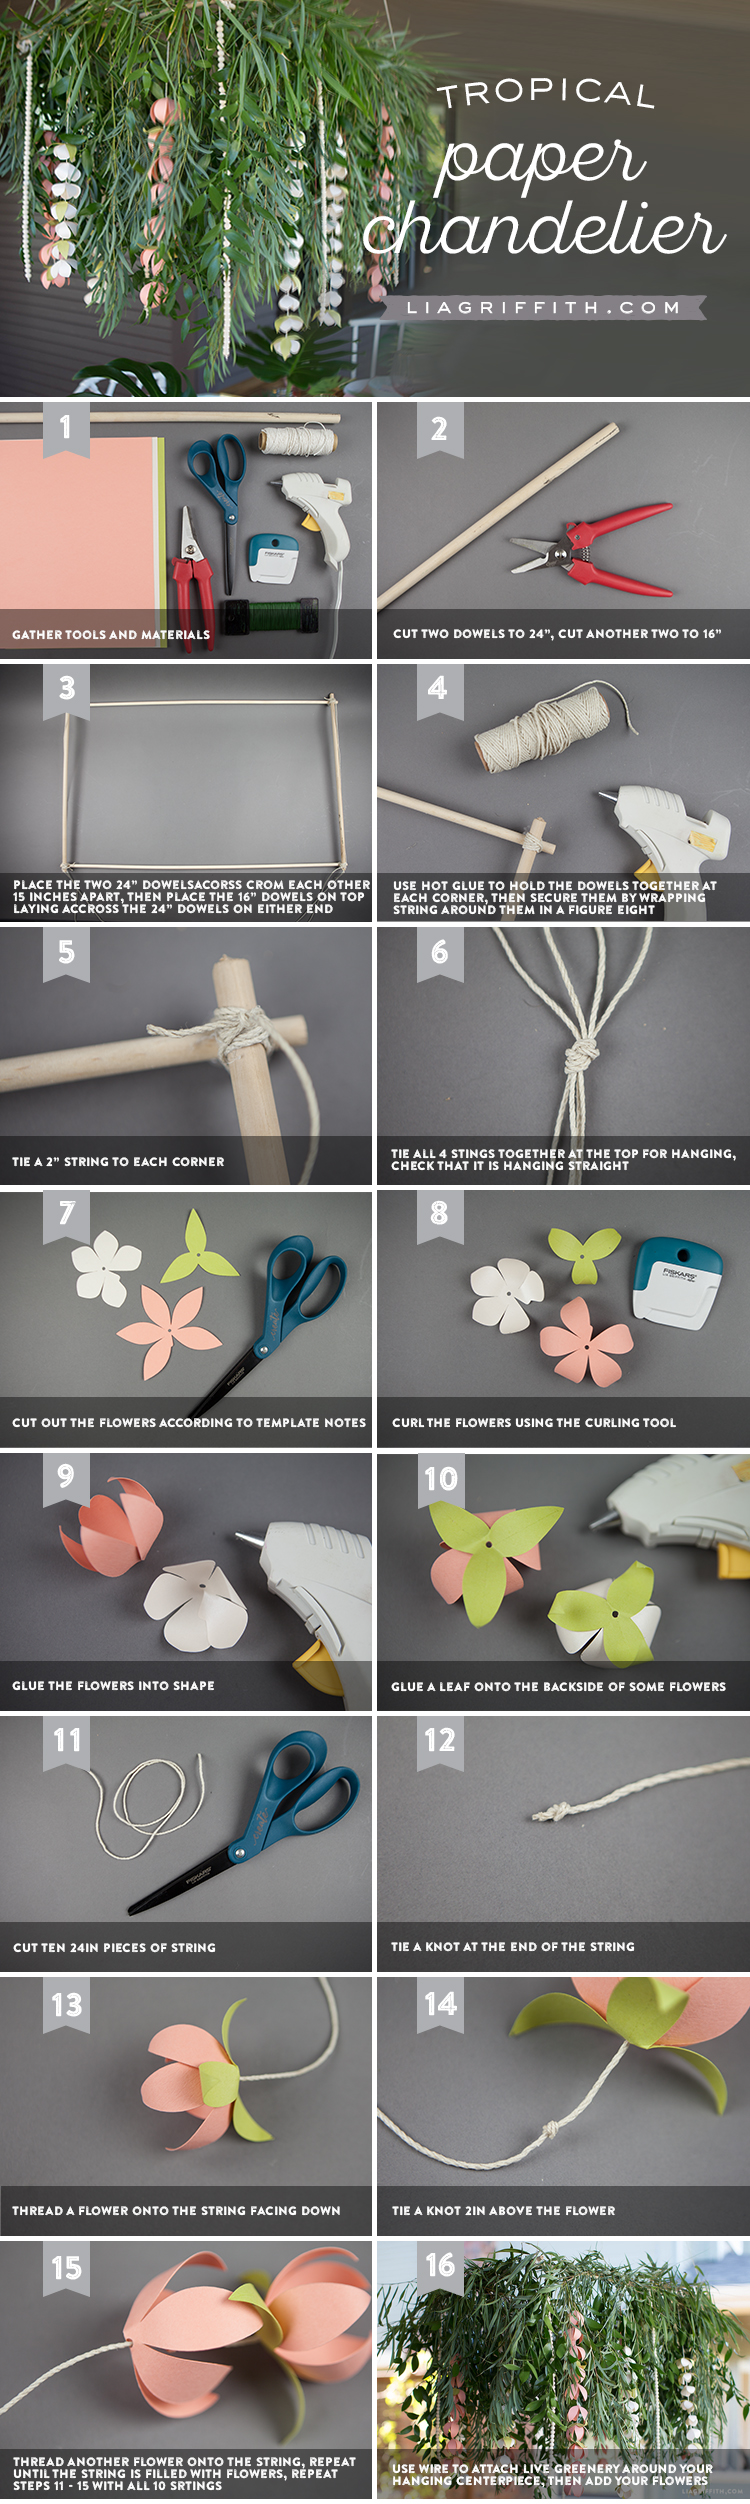 Tropical Paper Chandelier Photo Tutorial